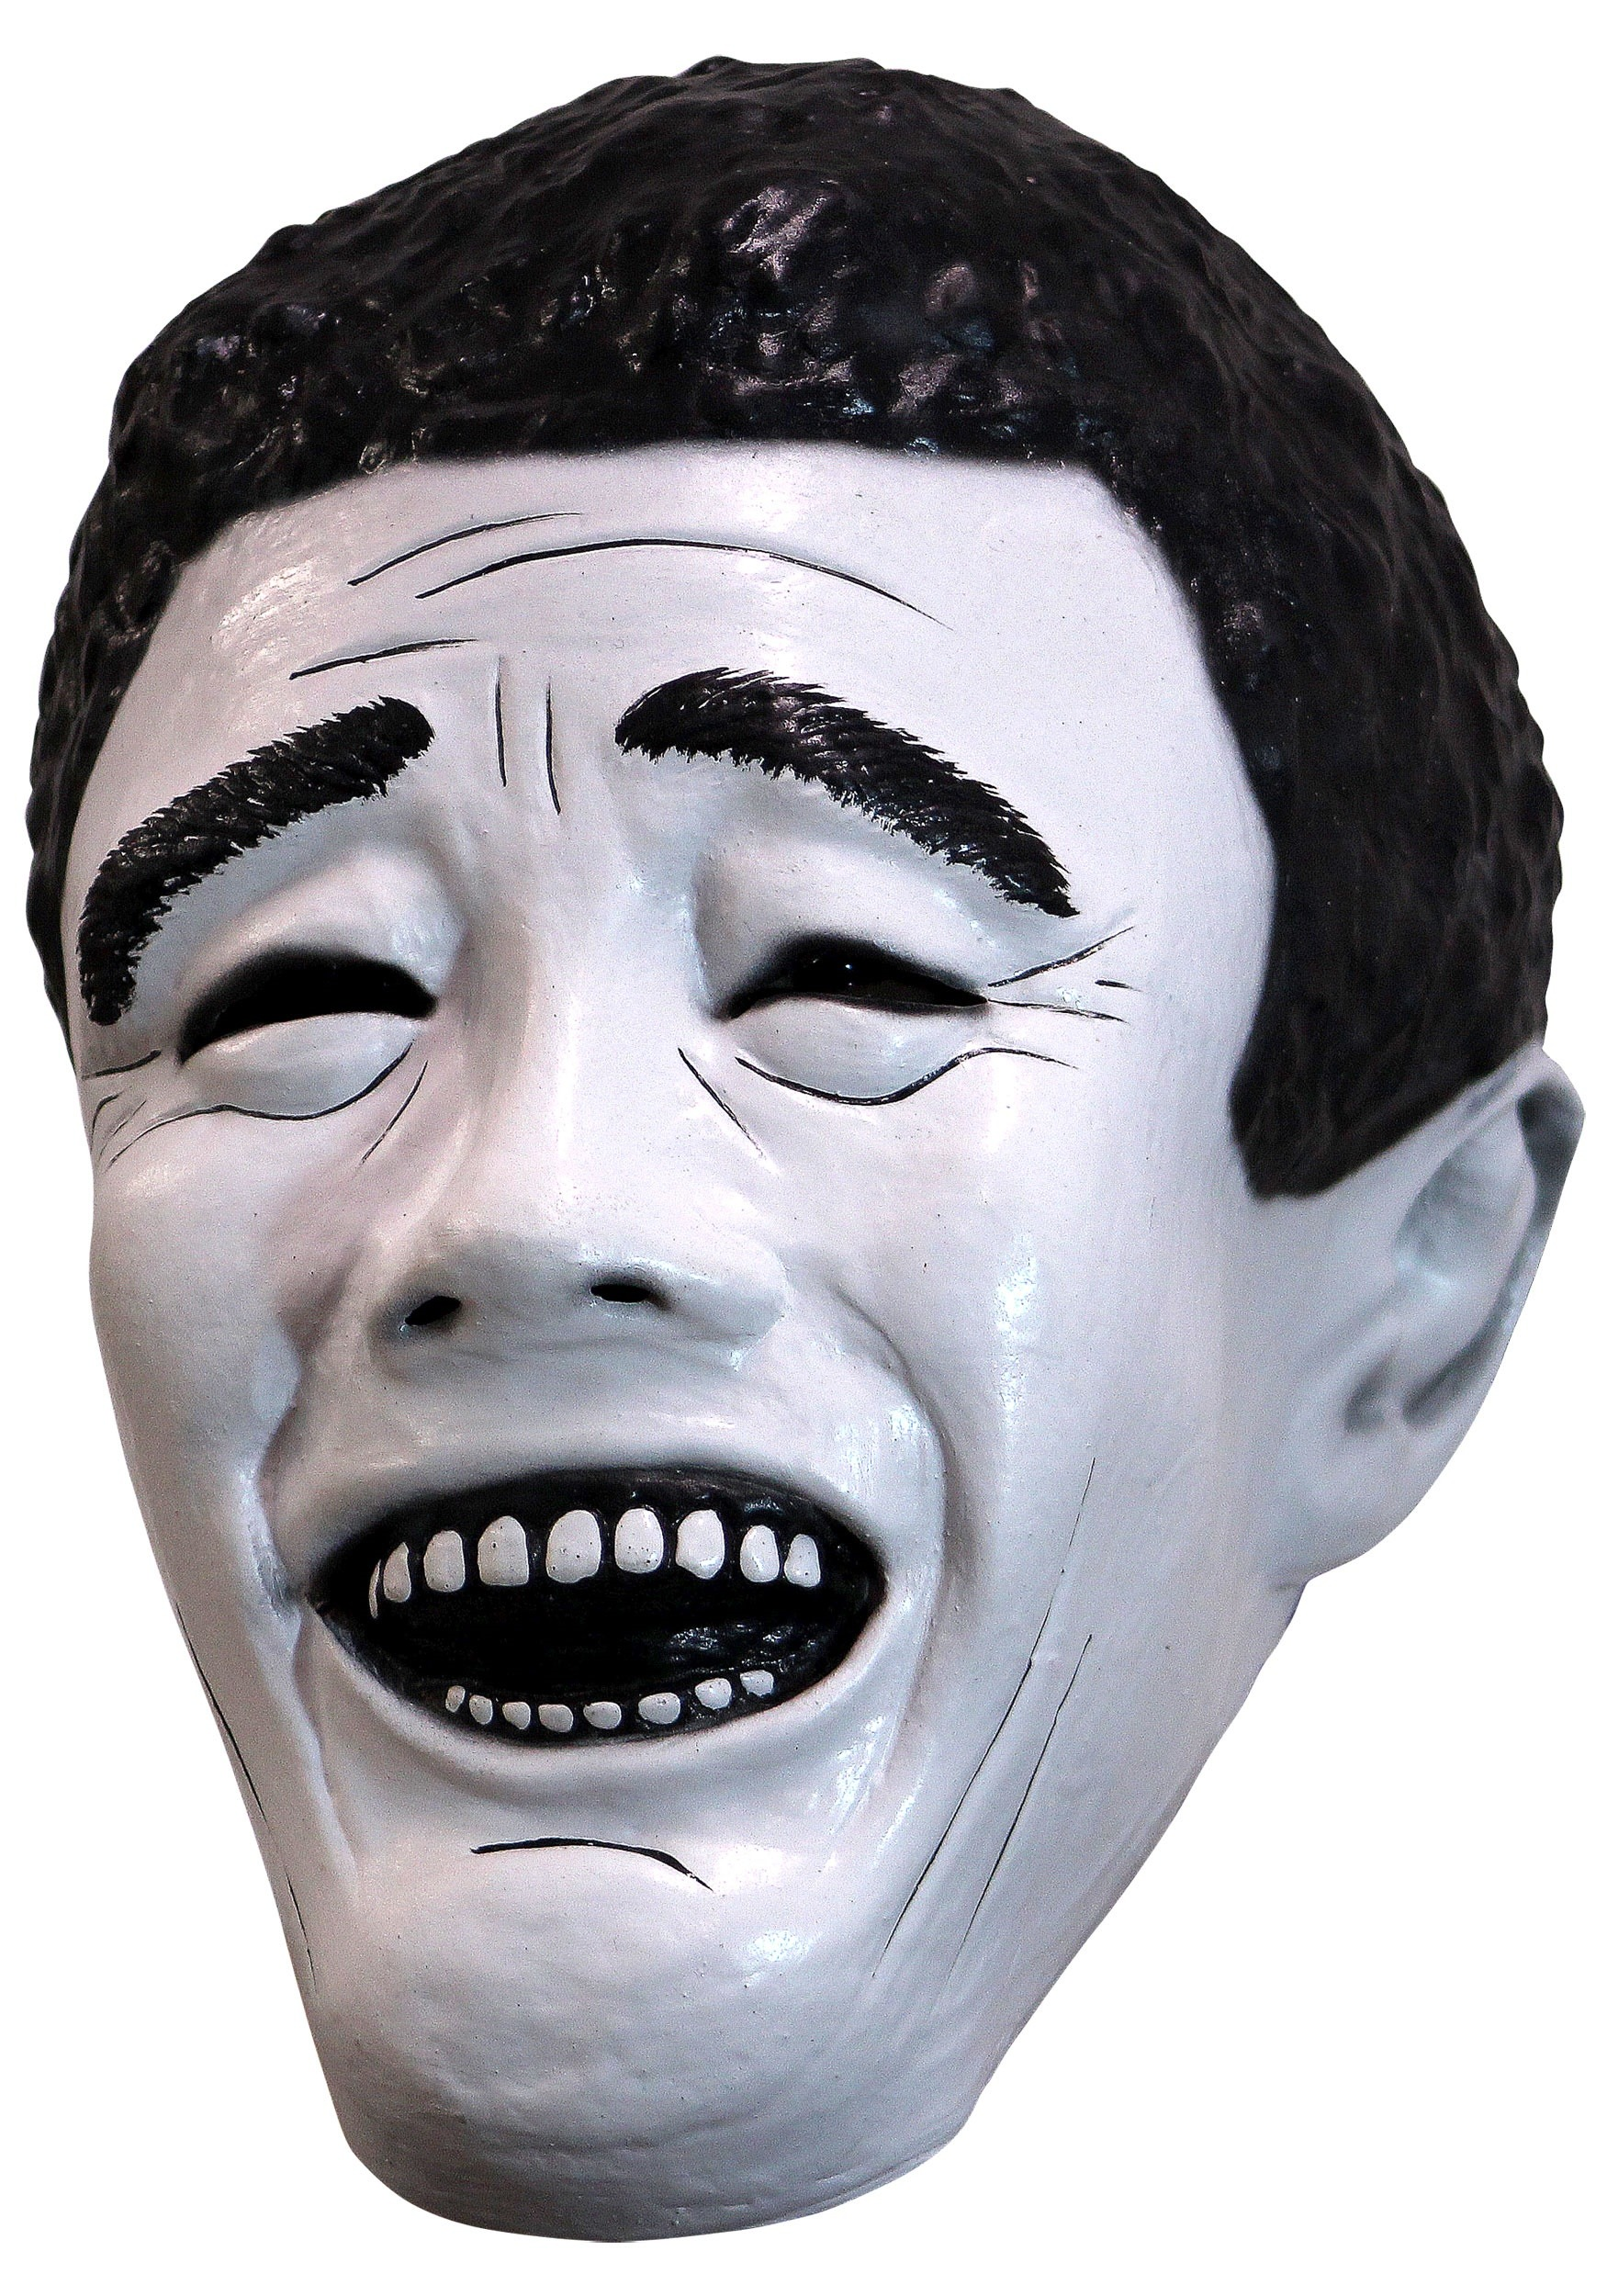 yao ming meme face adult mask yao ming face meme mask for adults